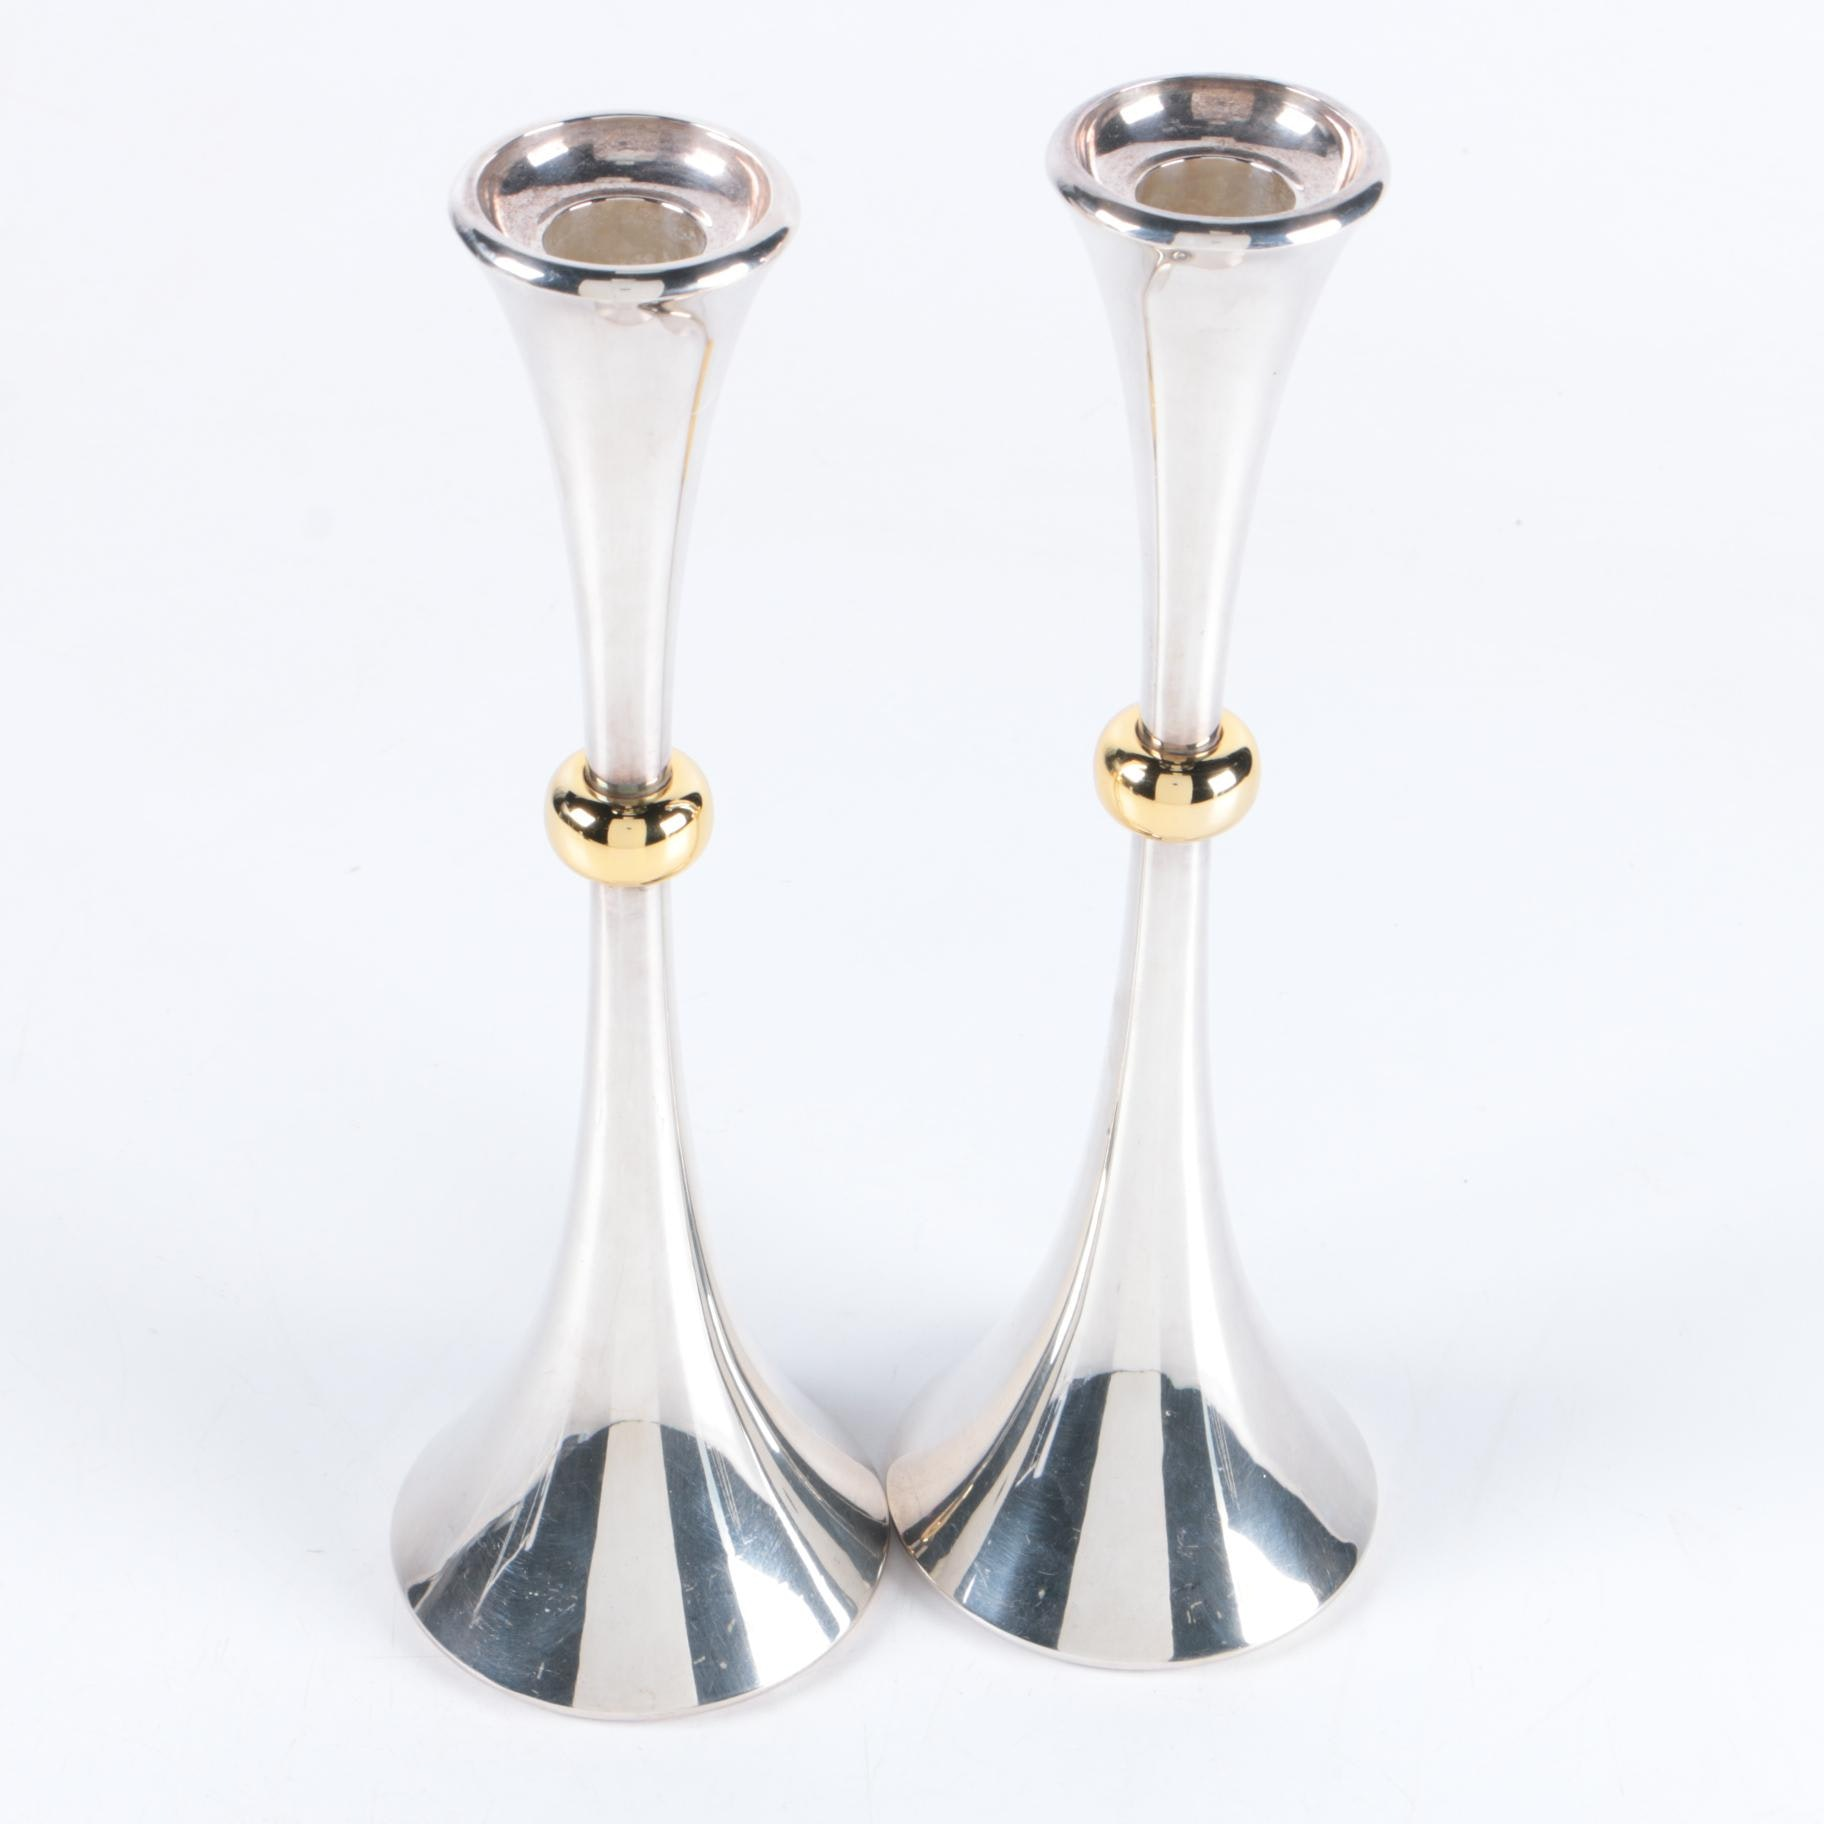 Jens Quistgaard for Dansk Danish Modern Silver Plate and Brass Candlesticks